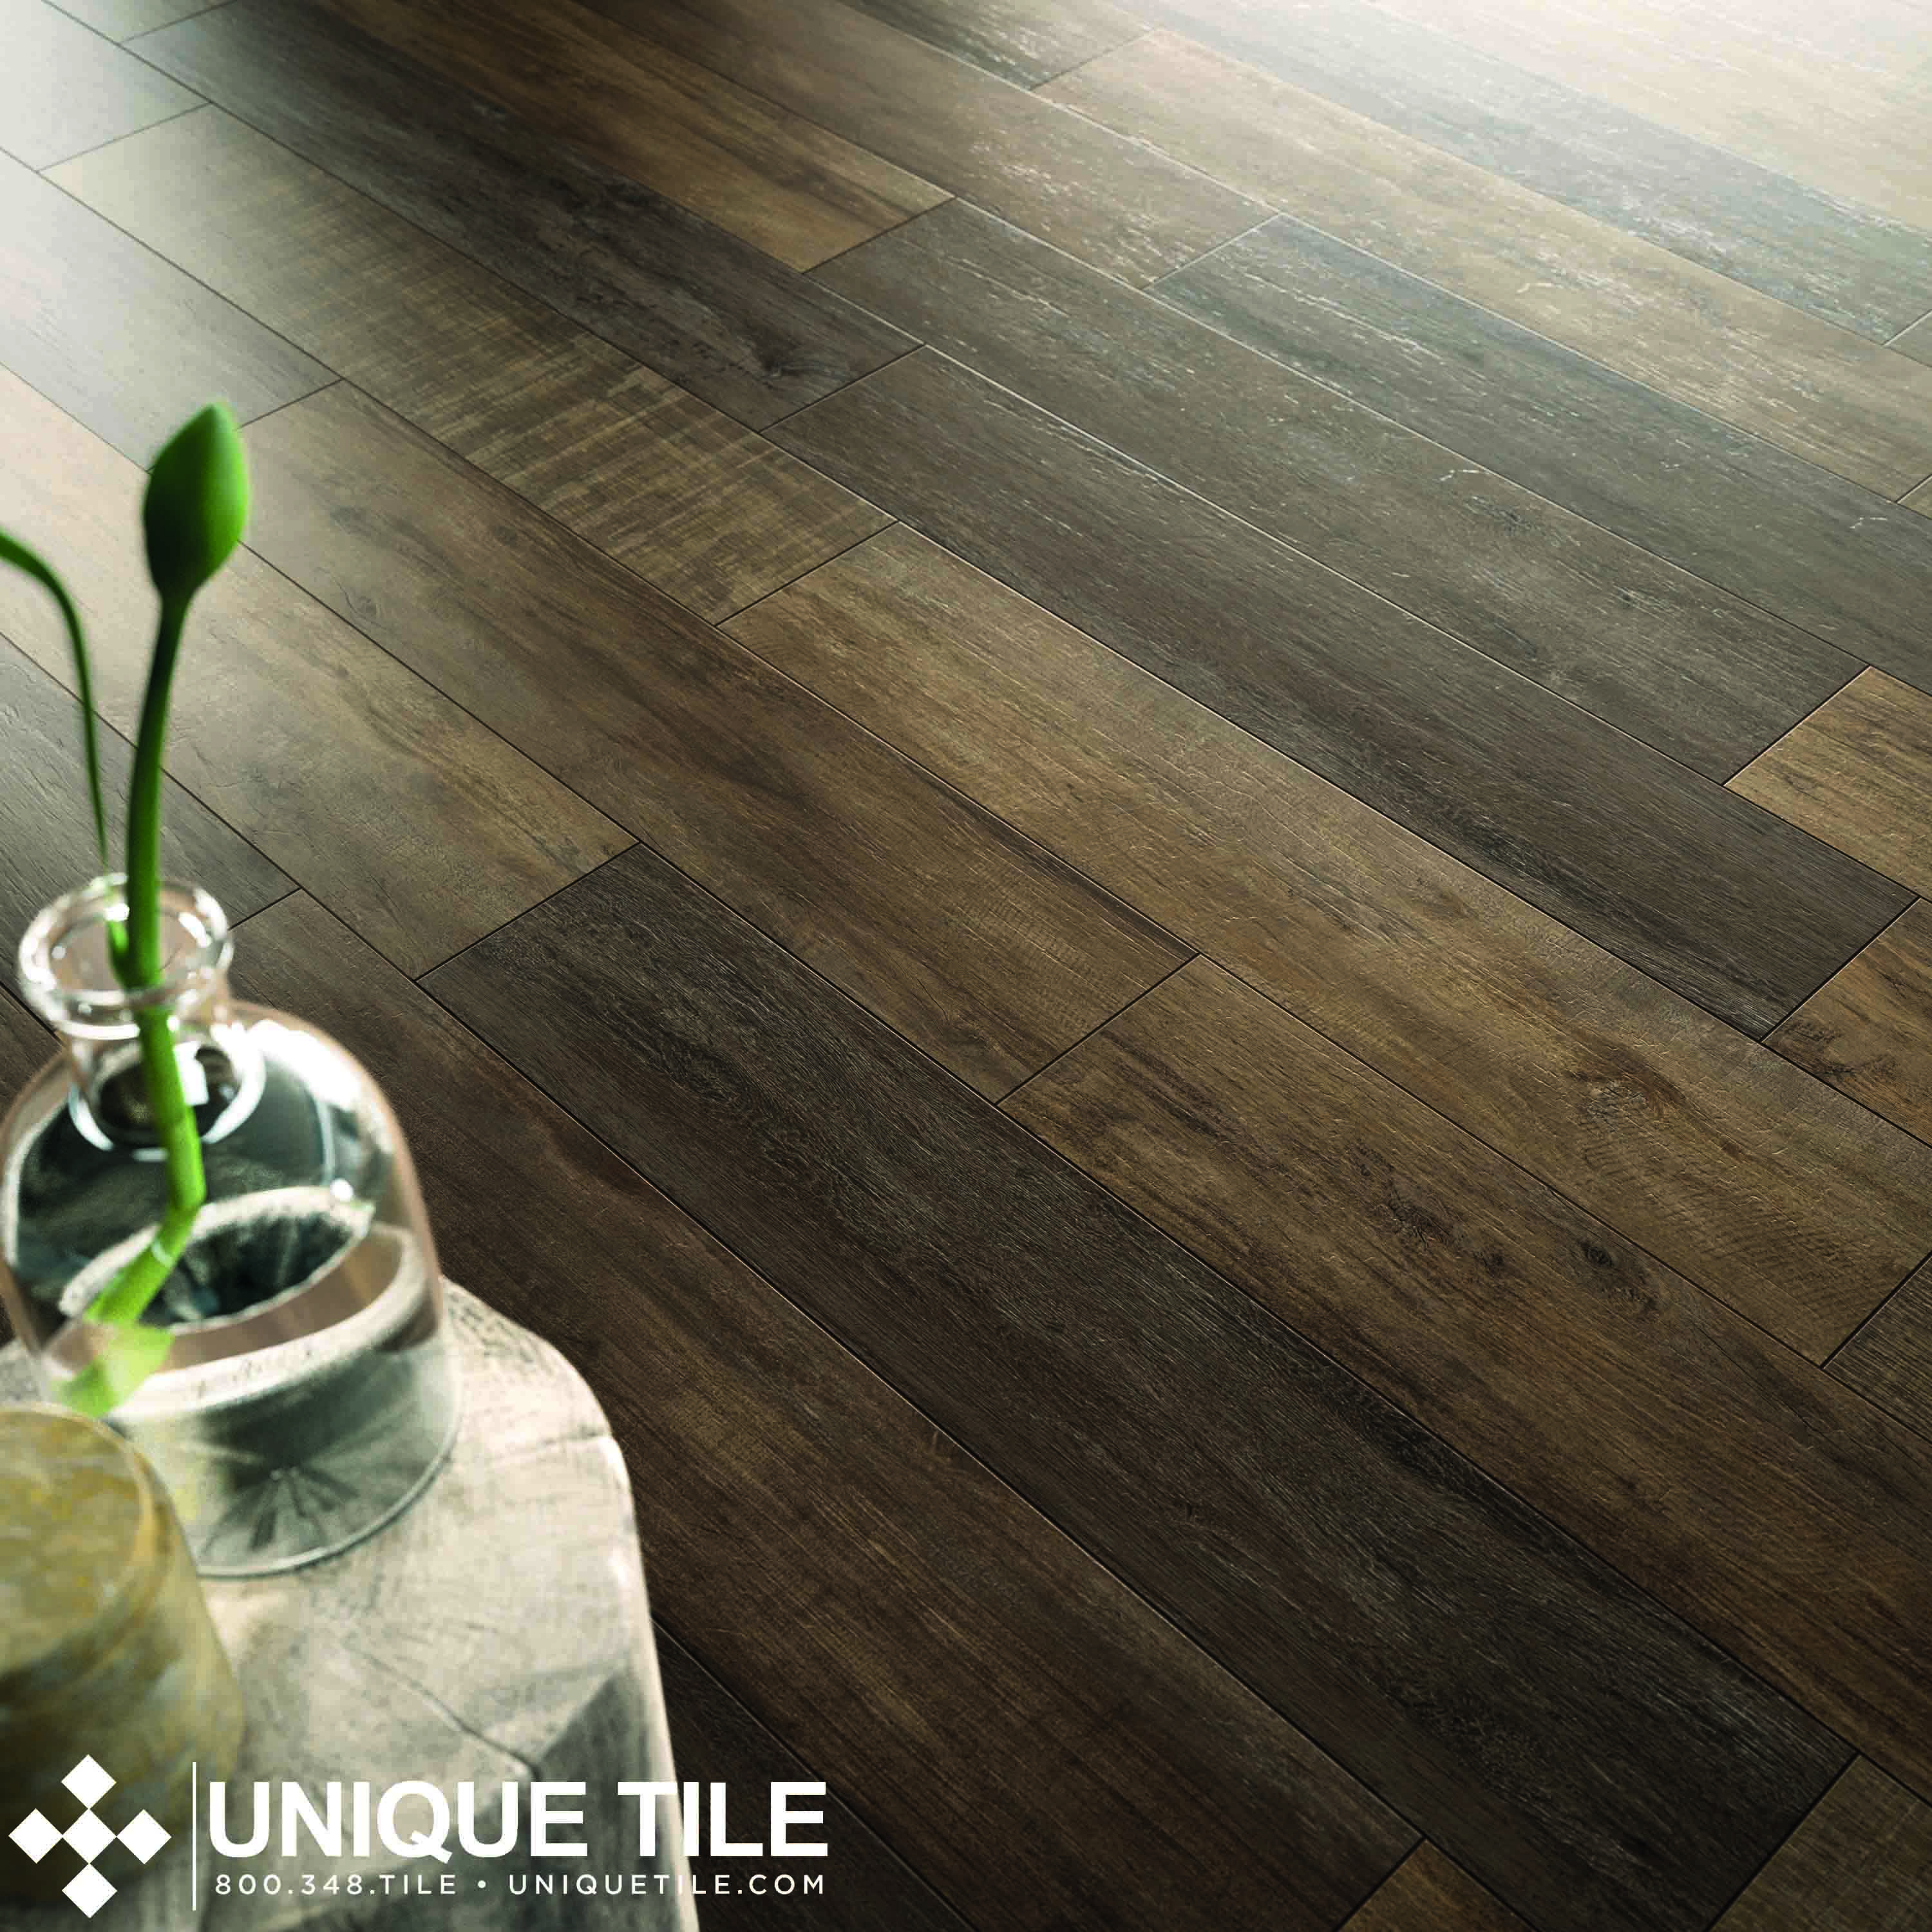 Wood-Look Porcelain. For Pricing, Colors, Sizes, And More